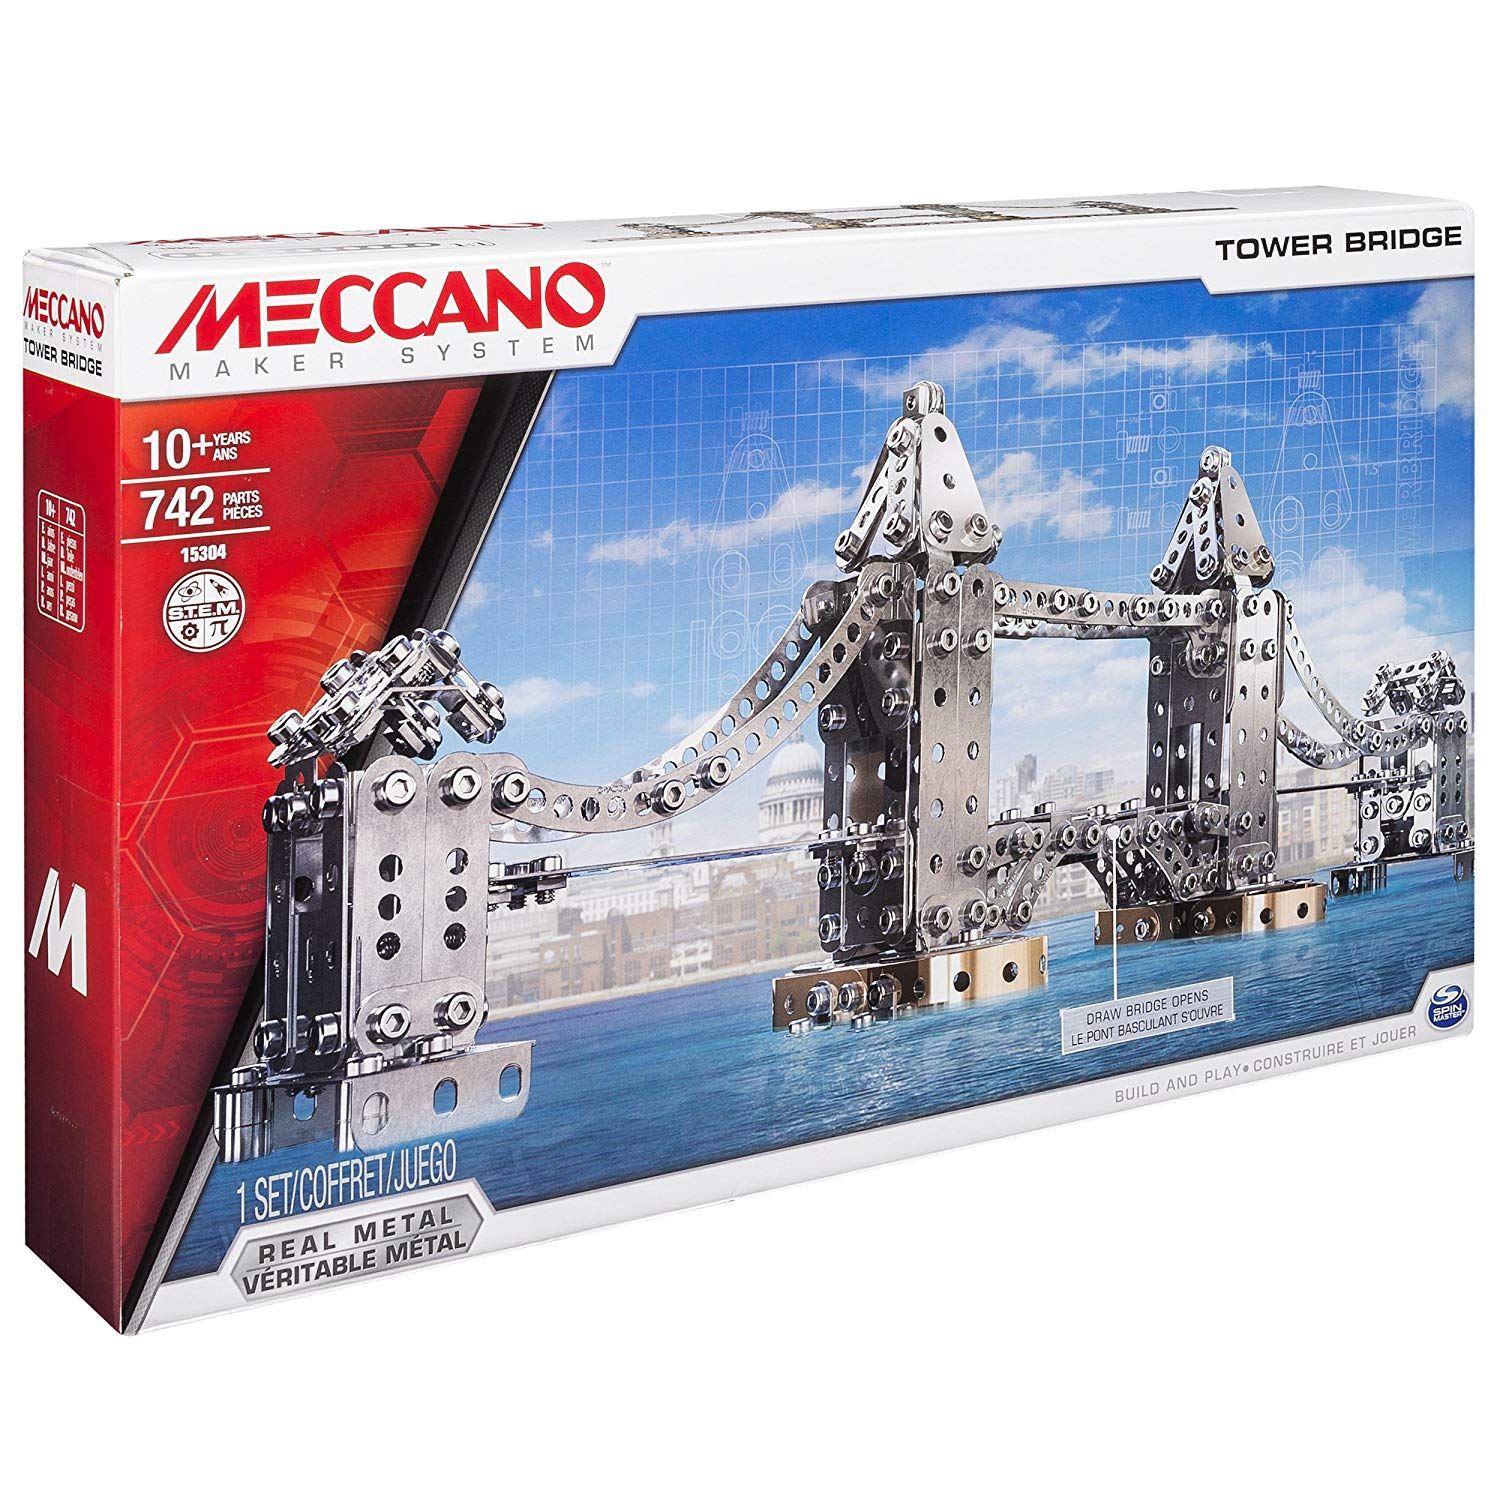 Meccano Tower Bridge Model Toy STEM Building Set Kit 742 Pieces